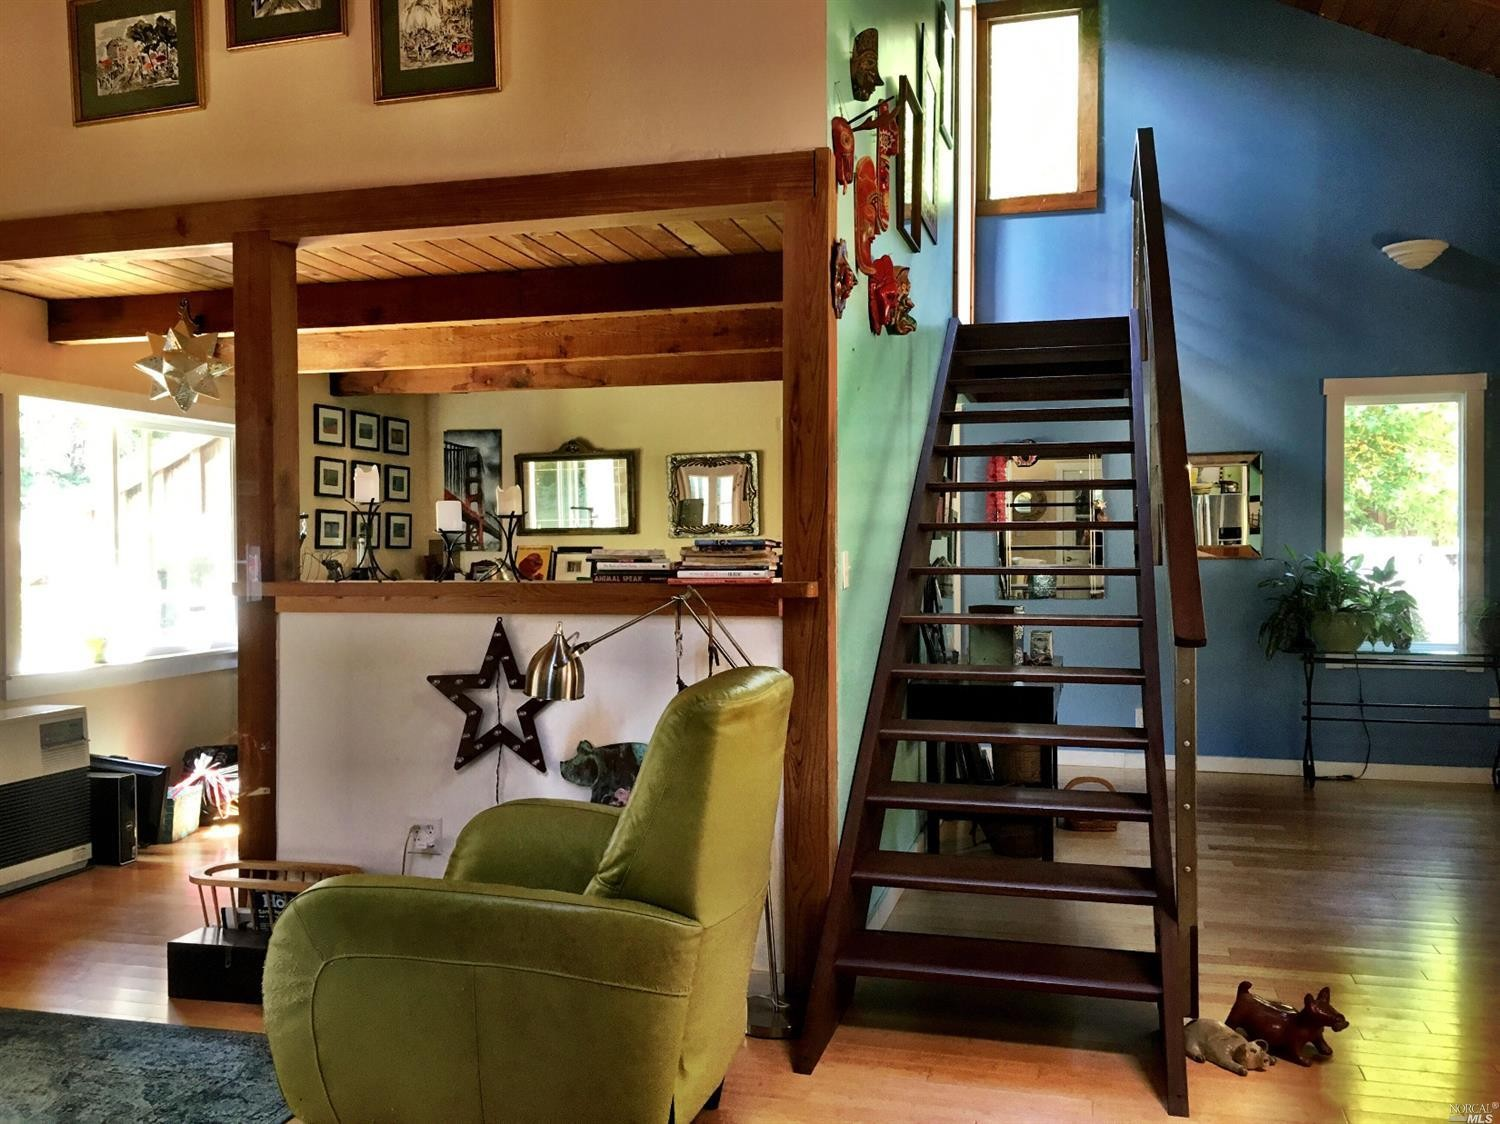 Handcrafted staircase in a home for sale on Guntly Road in Philo, CA.